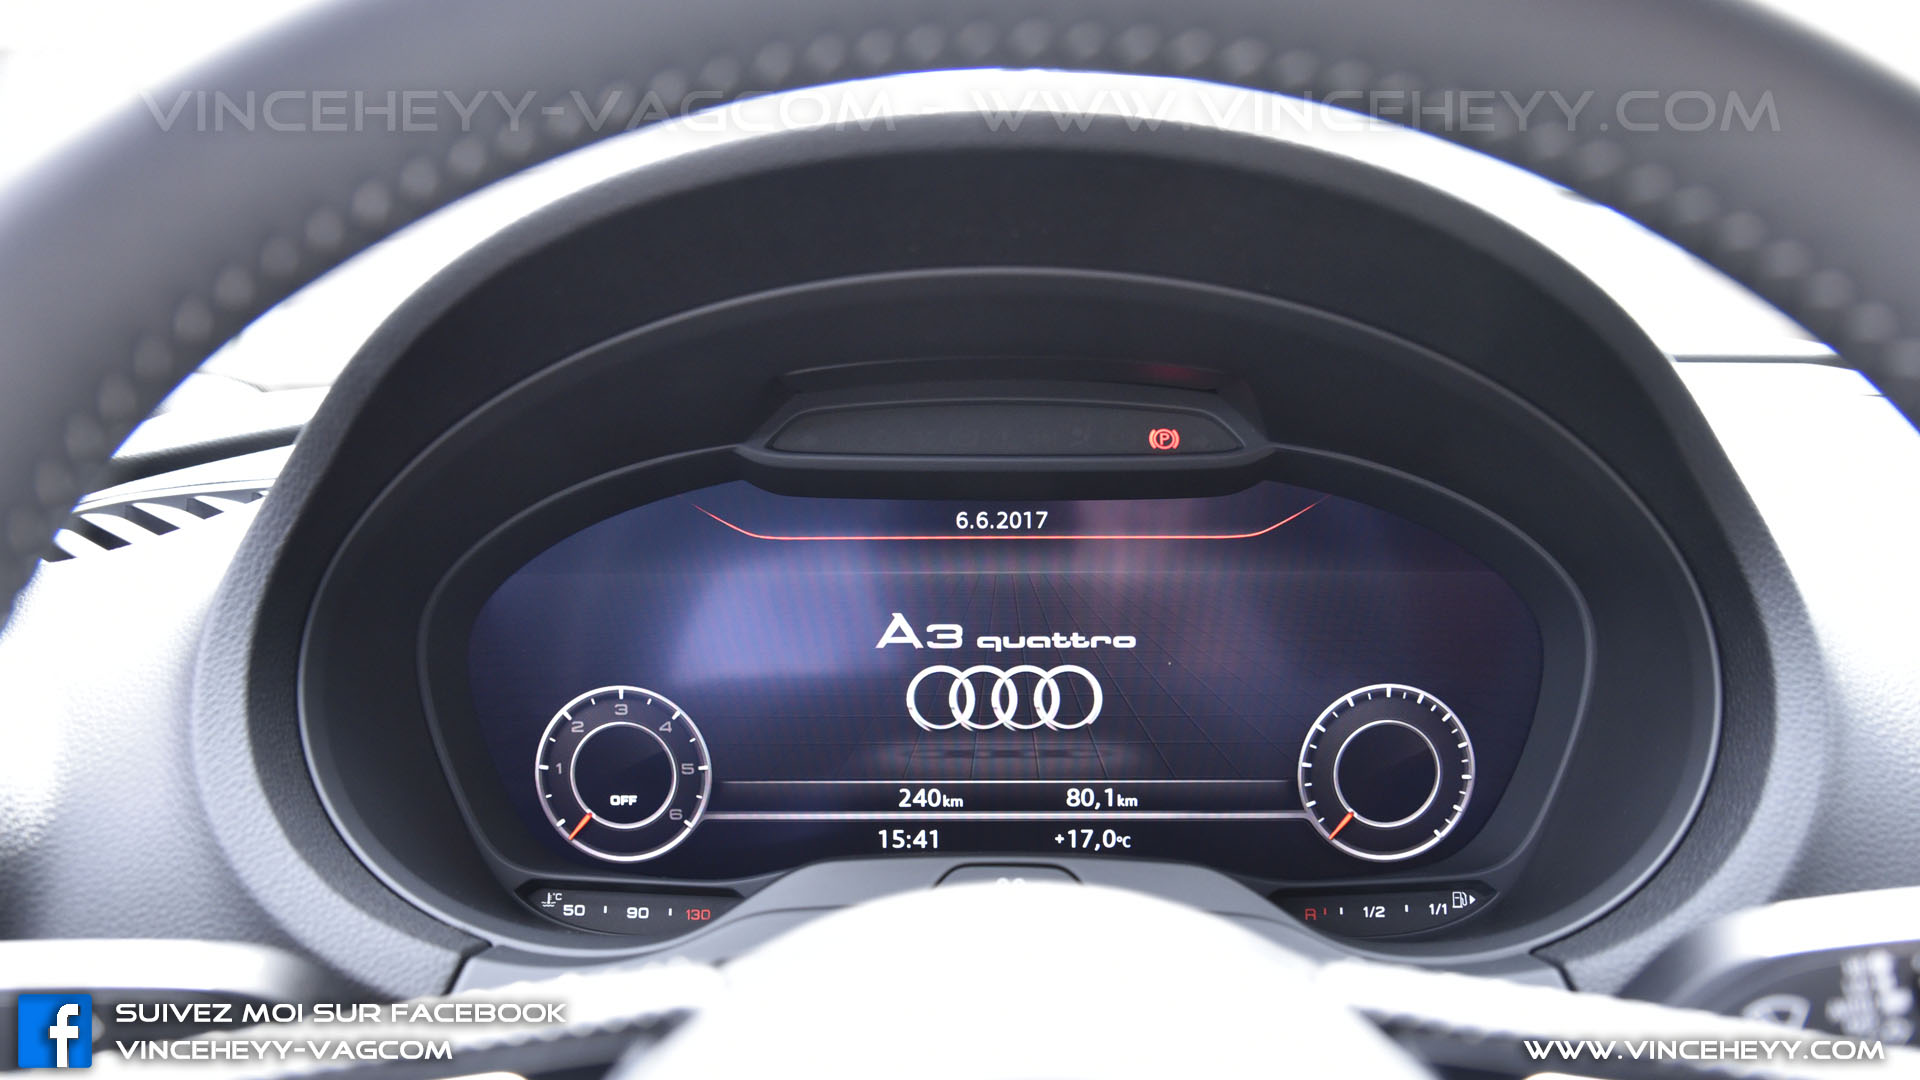 Virtual Cockpit - LOGO START - A3 Quattro